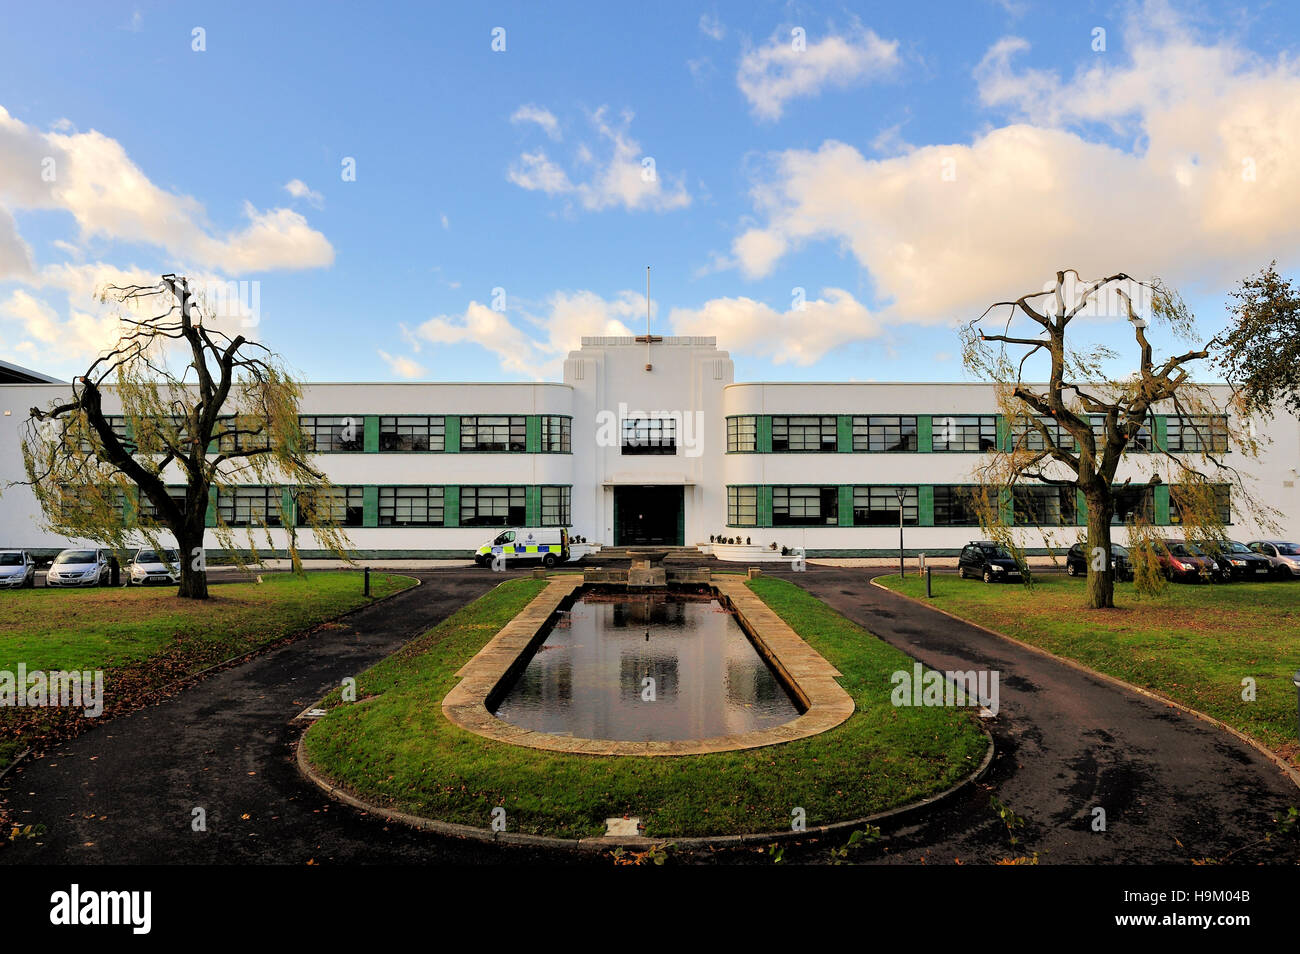 The police station at Hatfield, part of the former British Aerospace plant, Art Deco style, Hertfordshire, England - Stock Image